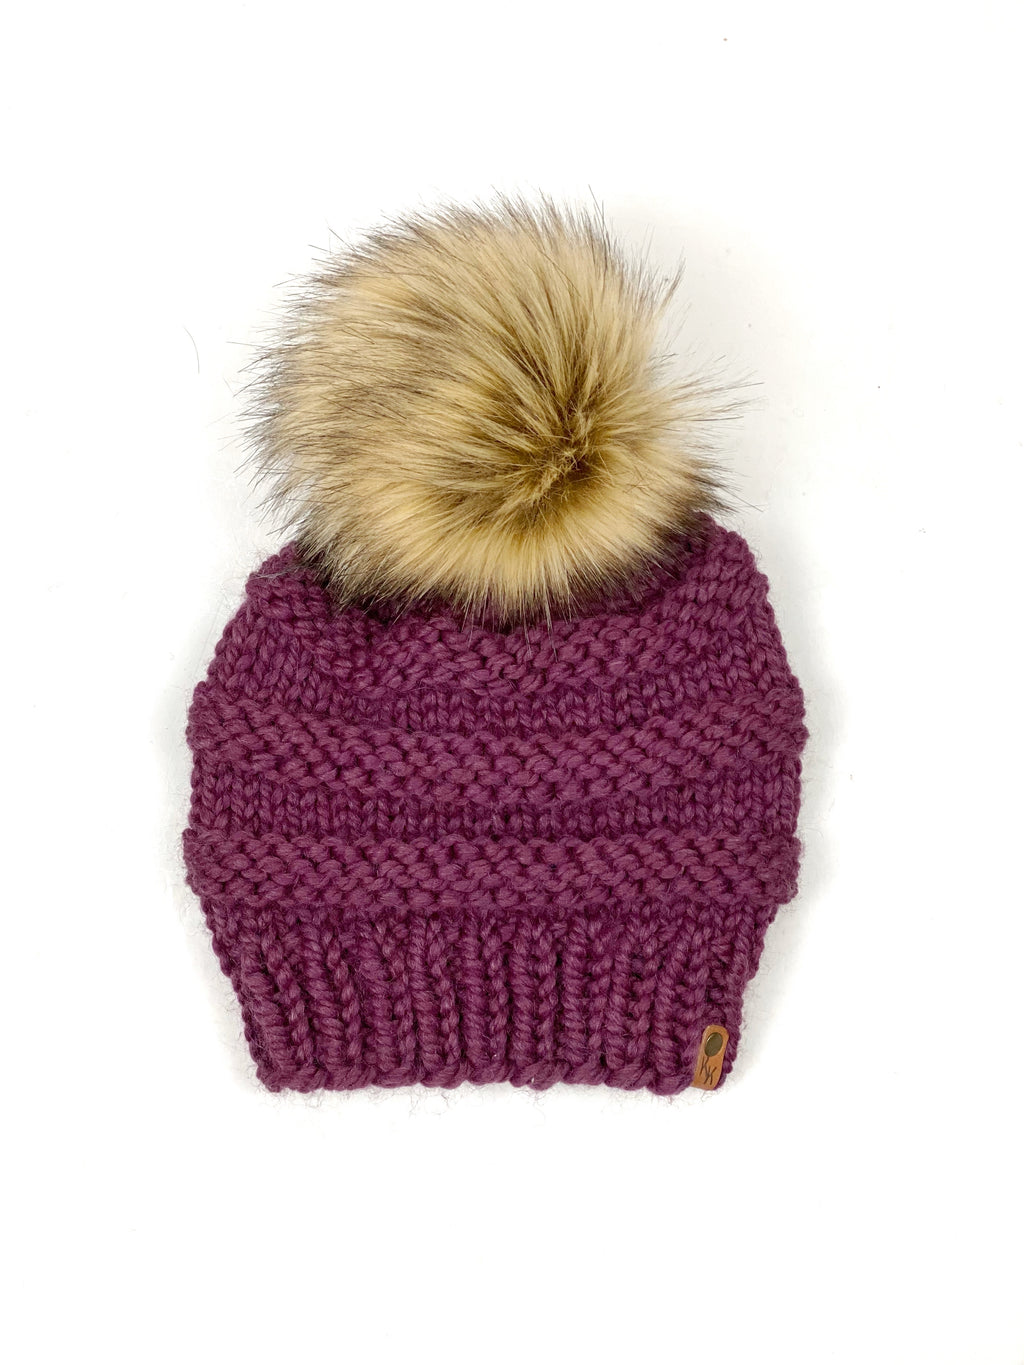 Fig Freddie Beanie, Womens Knit Hat, Copy Cat Beanie, Wool Blend Beanie, Faux Fur Pom